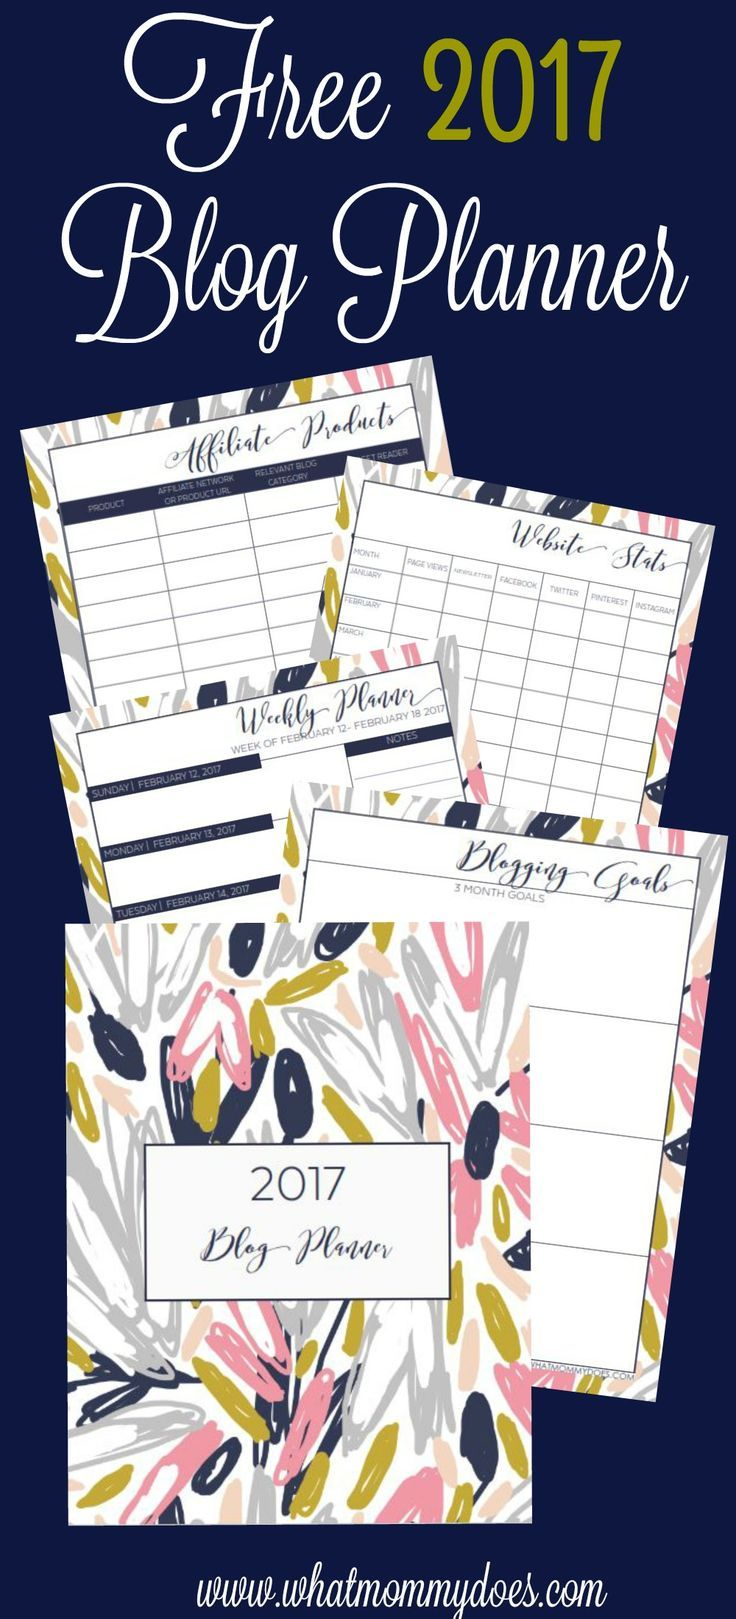 I've been looking for something like this to plan 2017! I can't believe it's free!!! | Free Printable 2017 Blog Planner contains: weekly planner pages, blank monthly calendar, blog goal setting page, blog post idea + website stats tracker, affiliate product listing & more! I already downloaded mine!